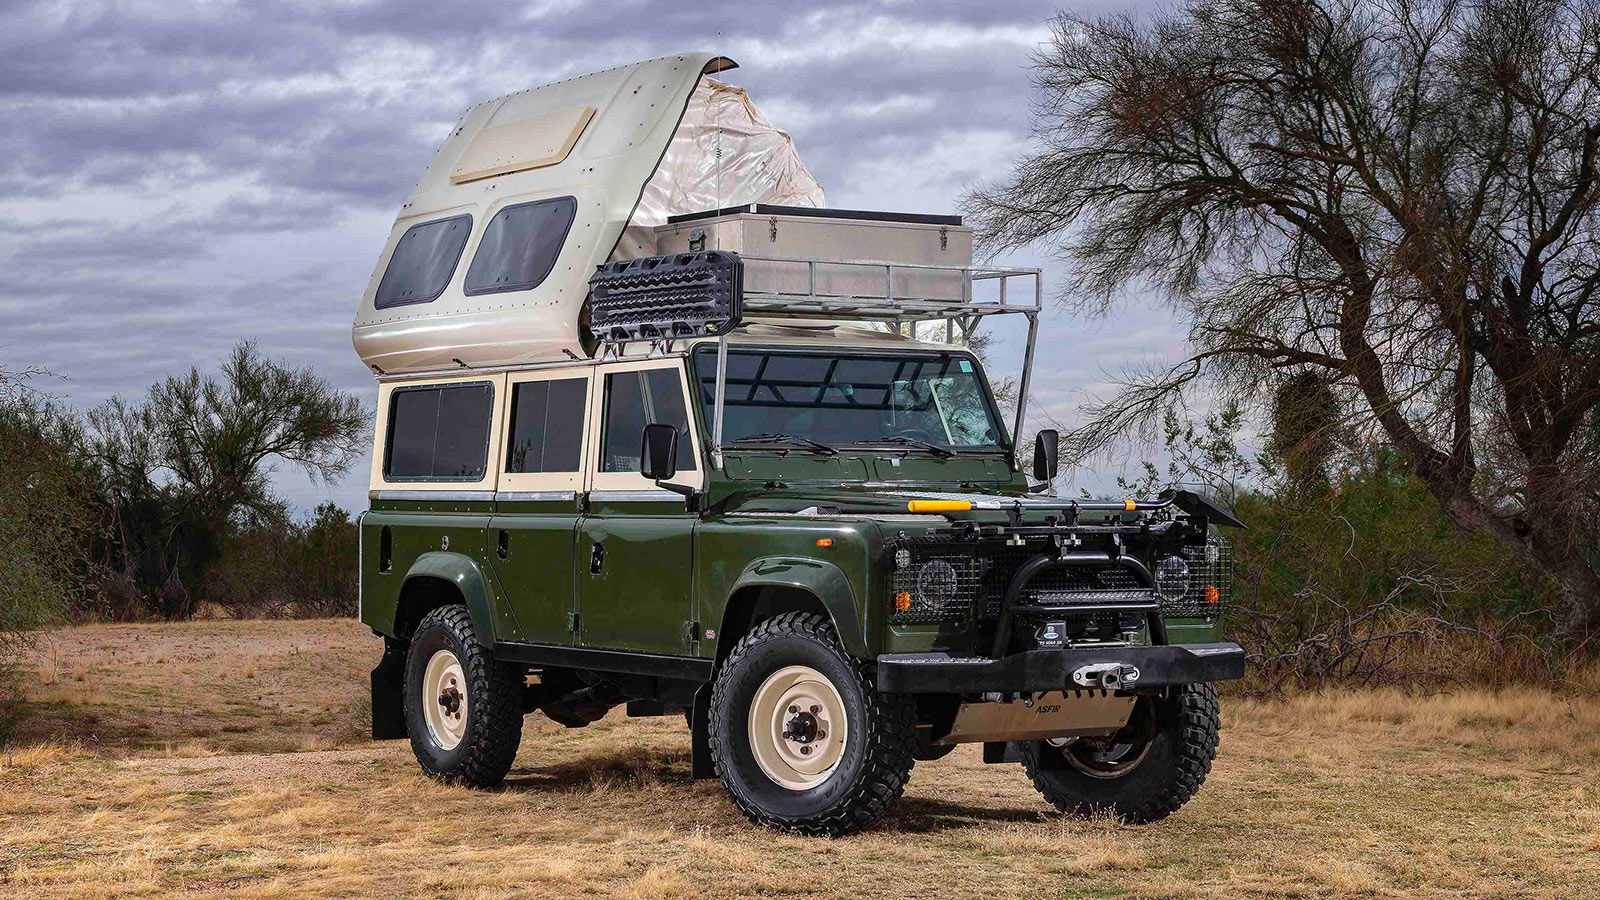 1984 Land Rover 110 Dormobile Overlanding Vehicle